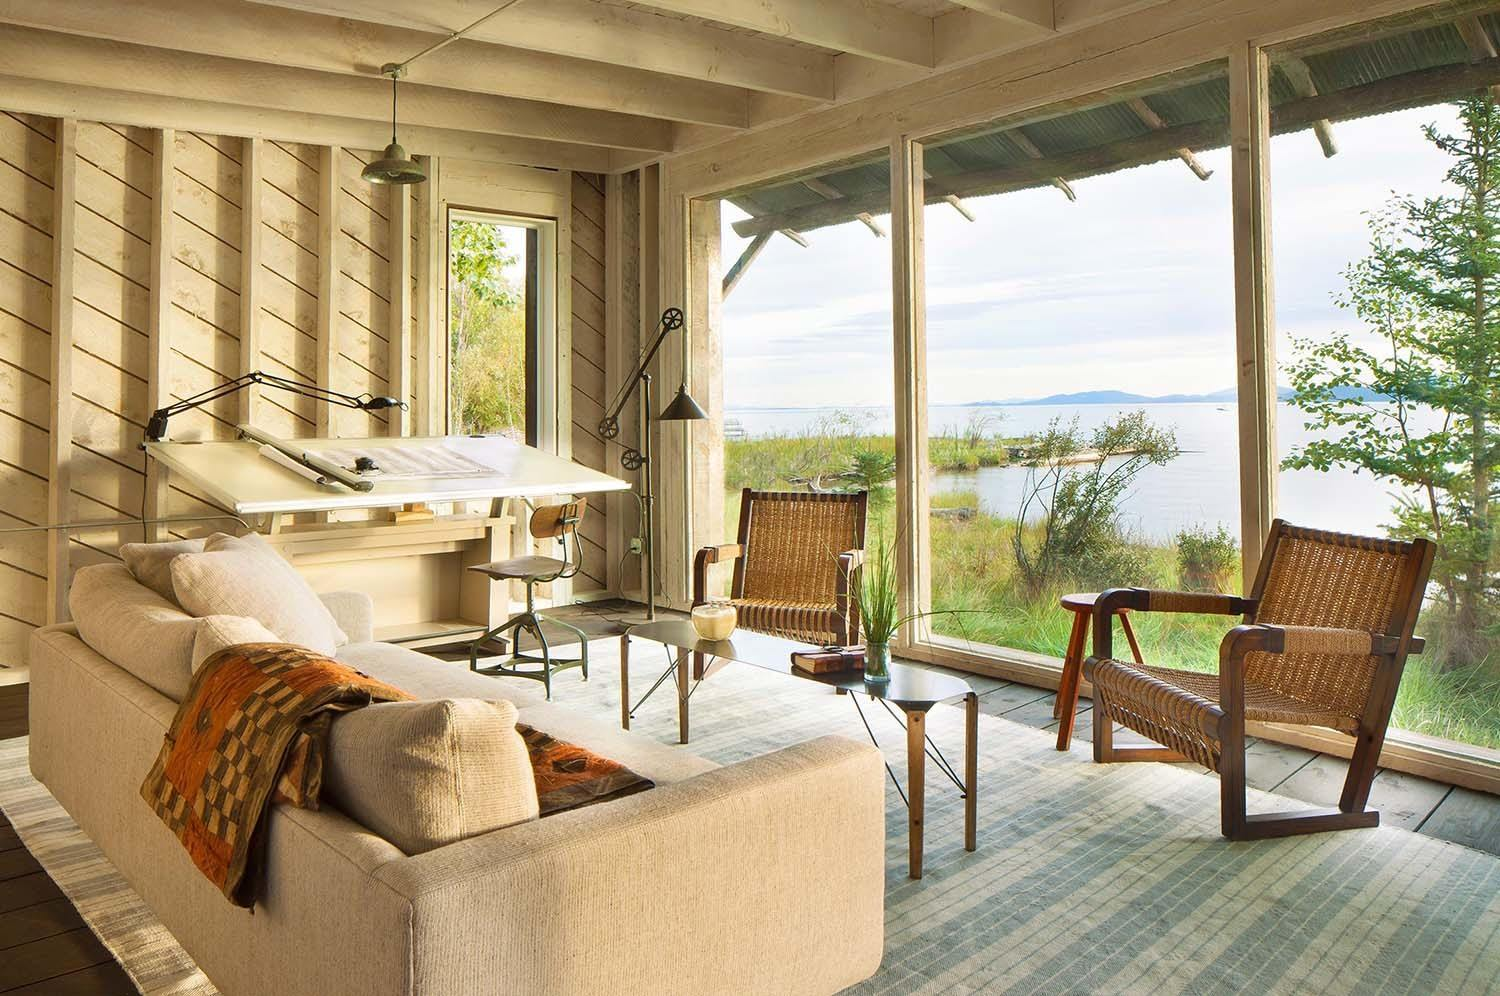 https://texastinyhomes.com/wp-content/uploads/2016/05/Modern-Rustic-Cabin-Pearson-Design-Group-04-1-Kindesign.jpg